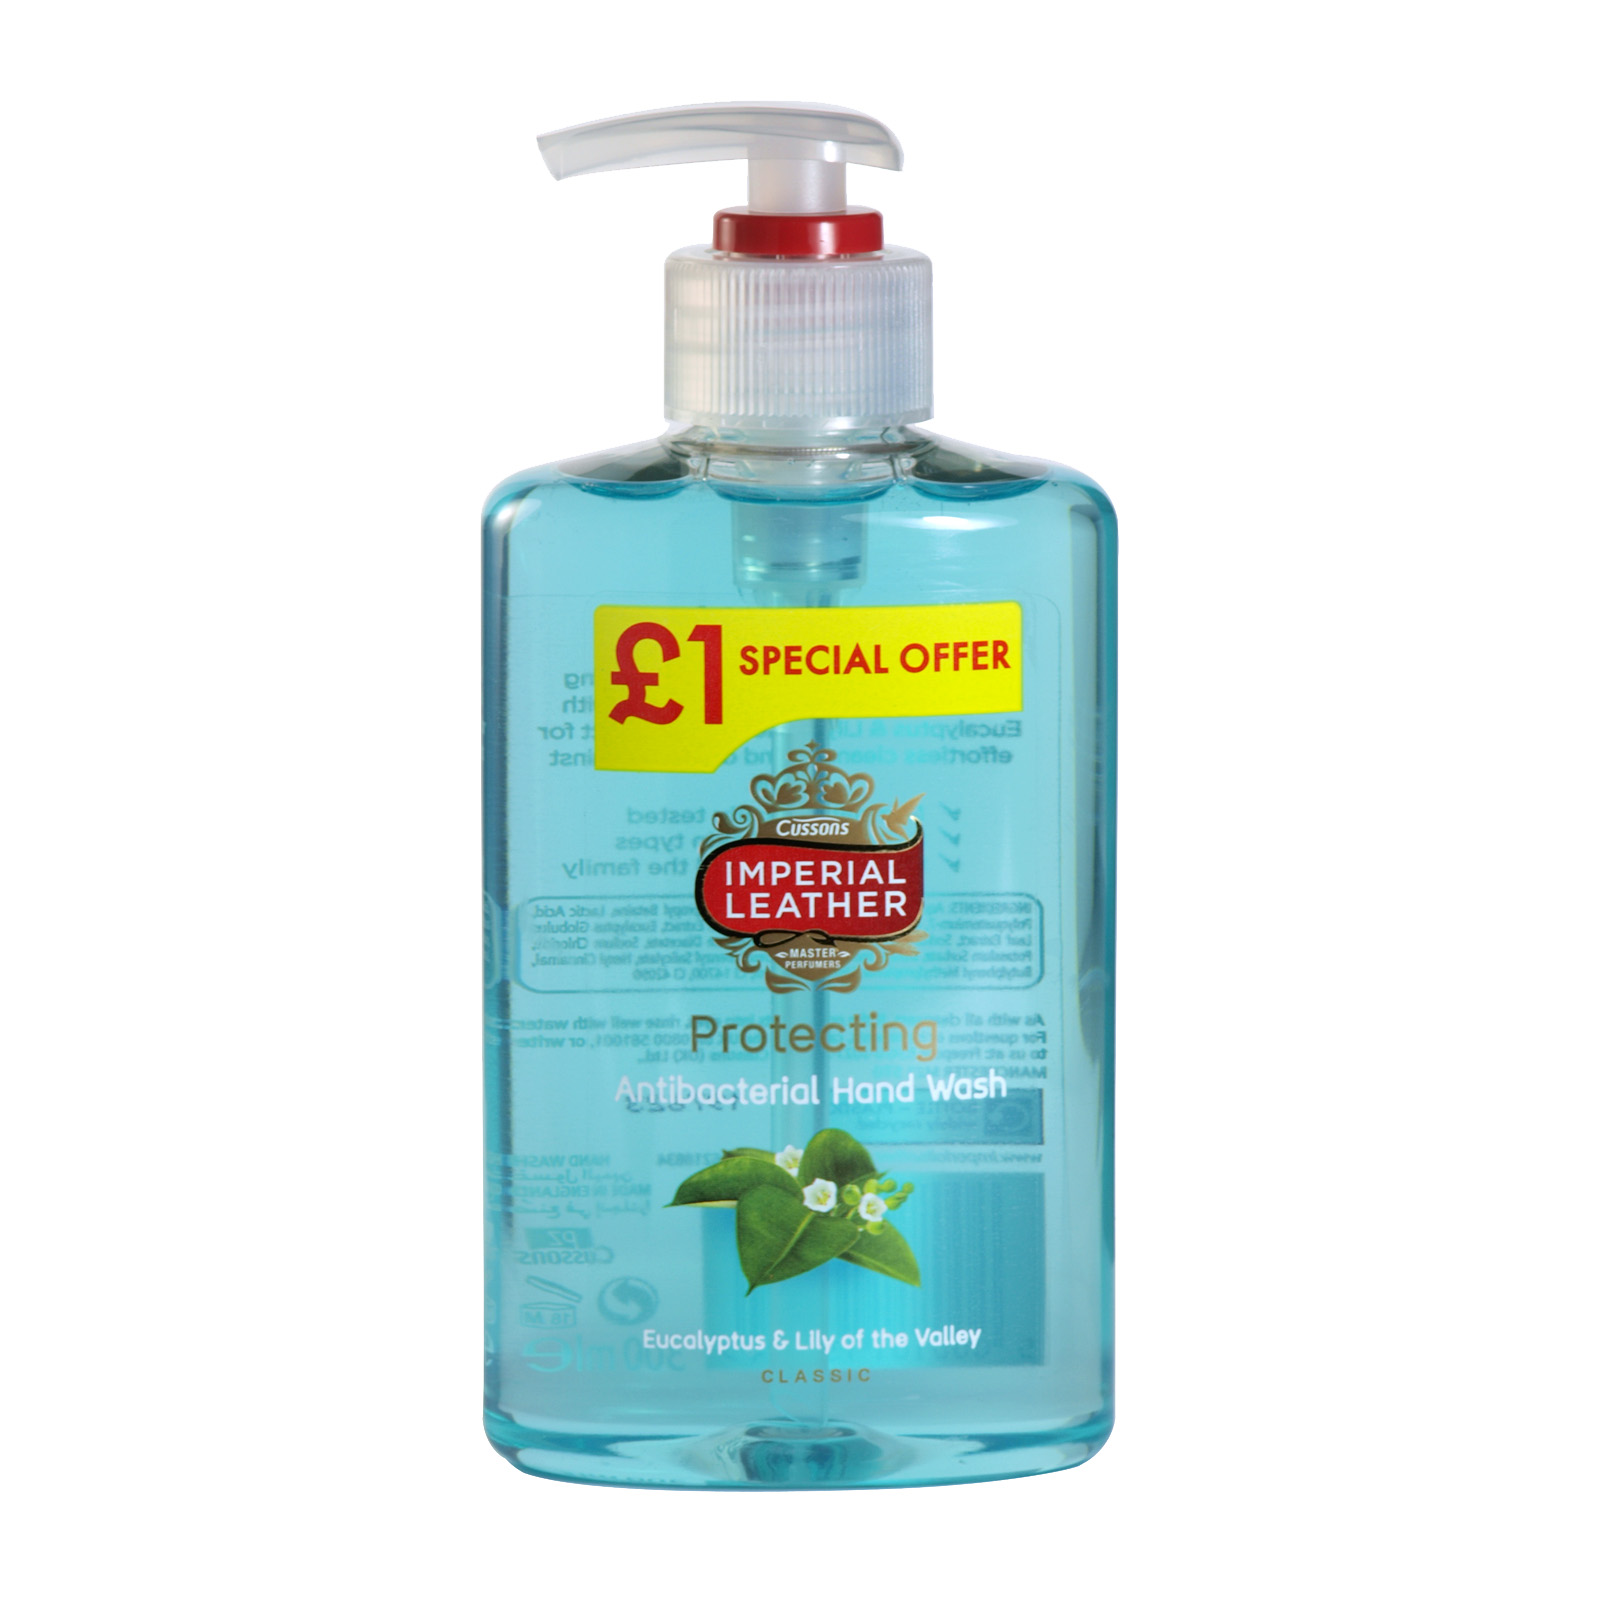 Imperial Leather Handwash 300ml Protecting Pm 1 X6 Concord Cash And Body Soap